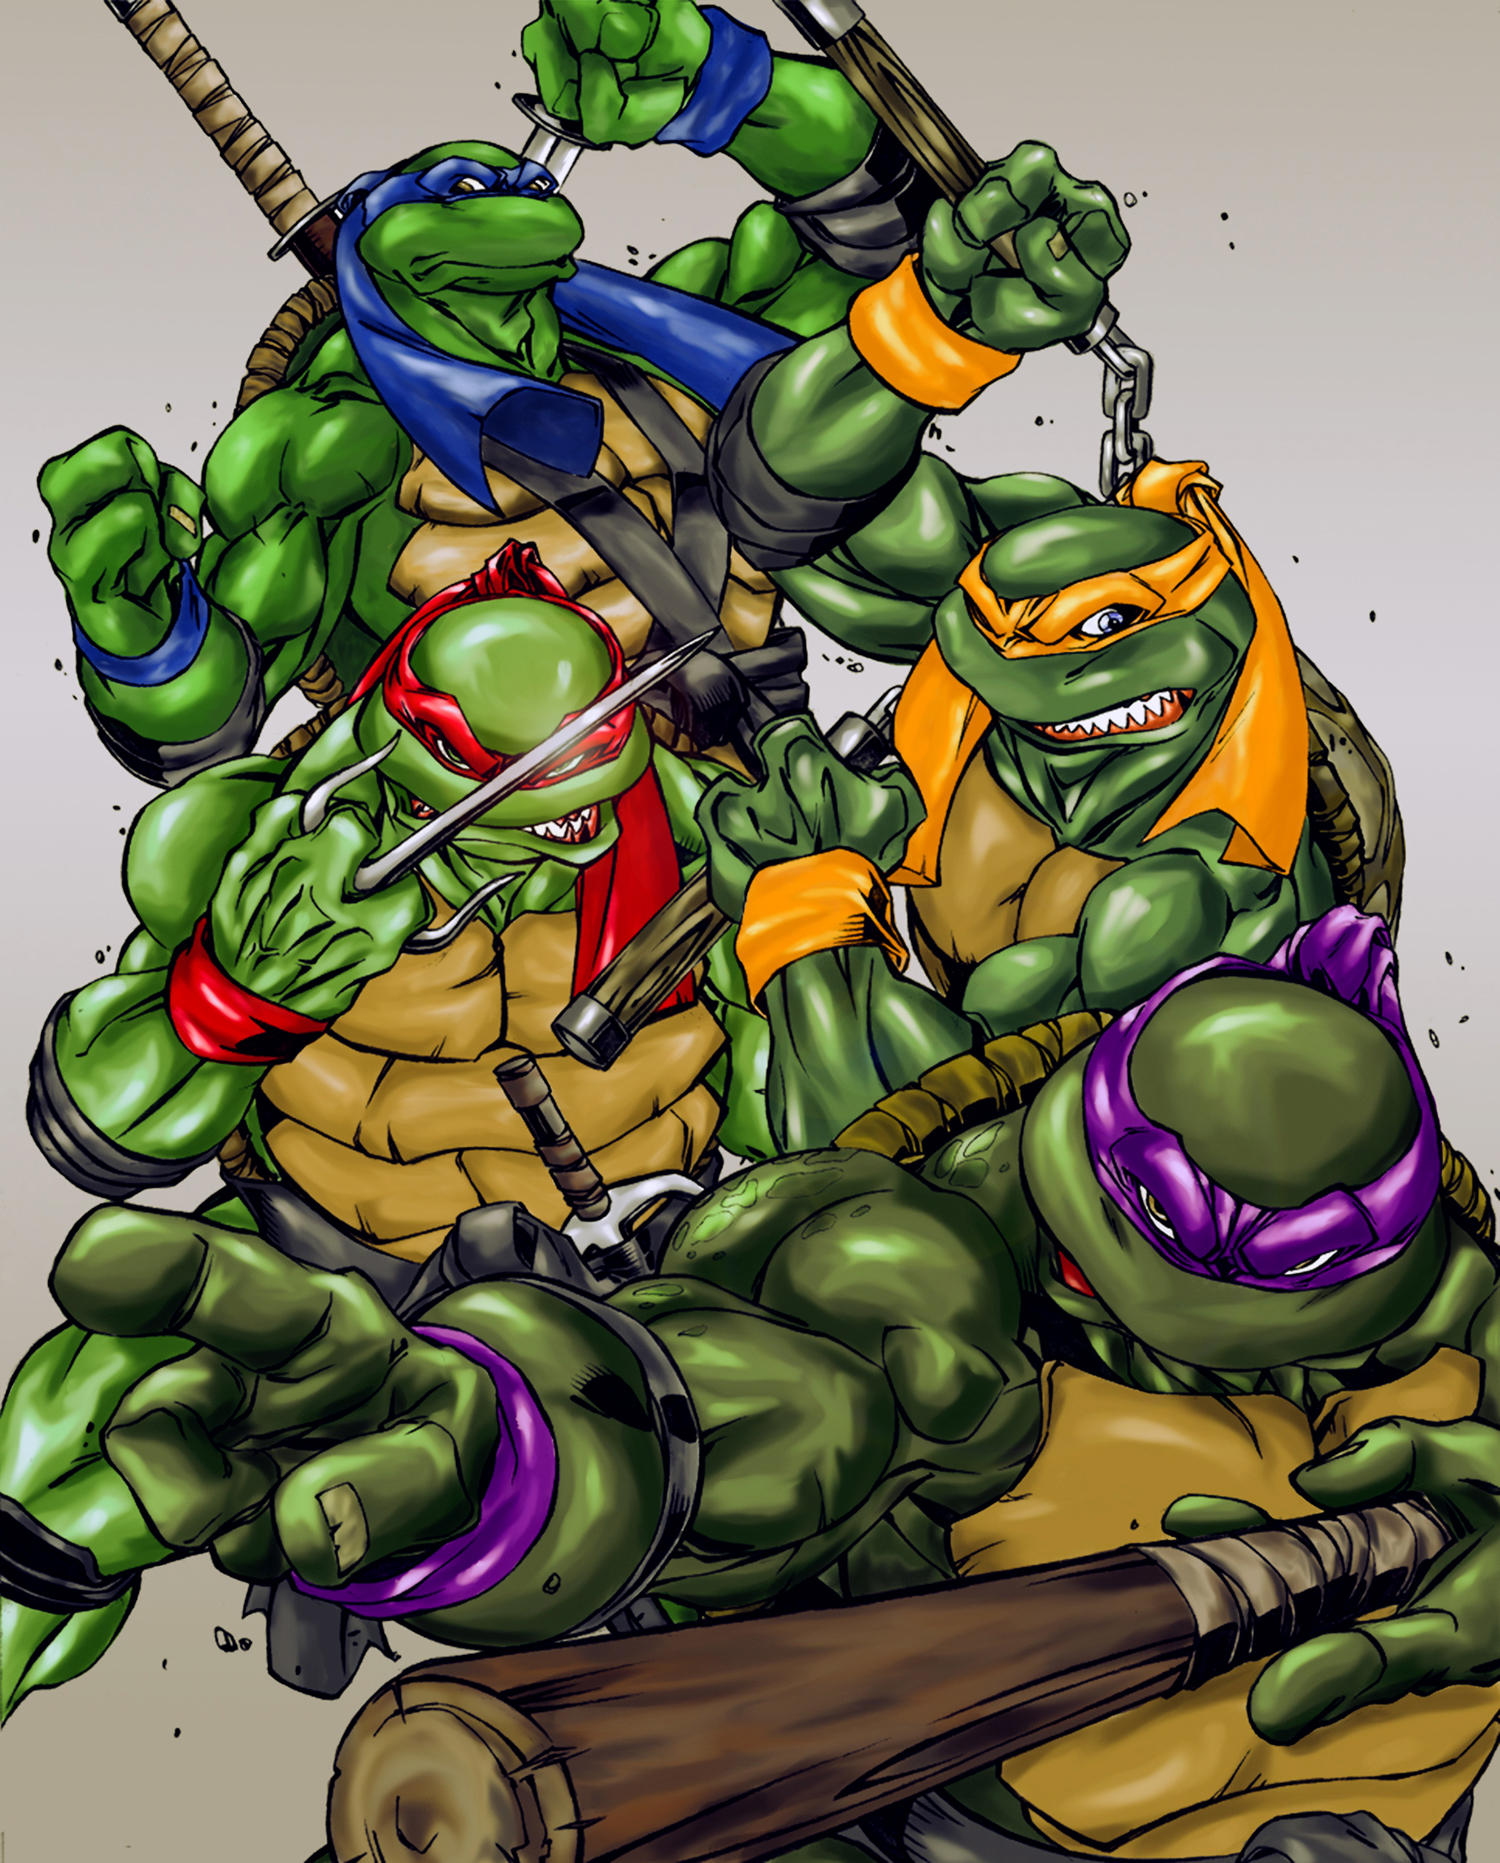 Ninja Turtles by thisisanton